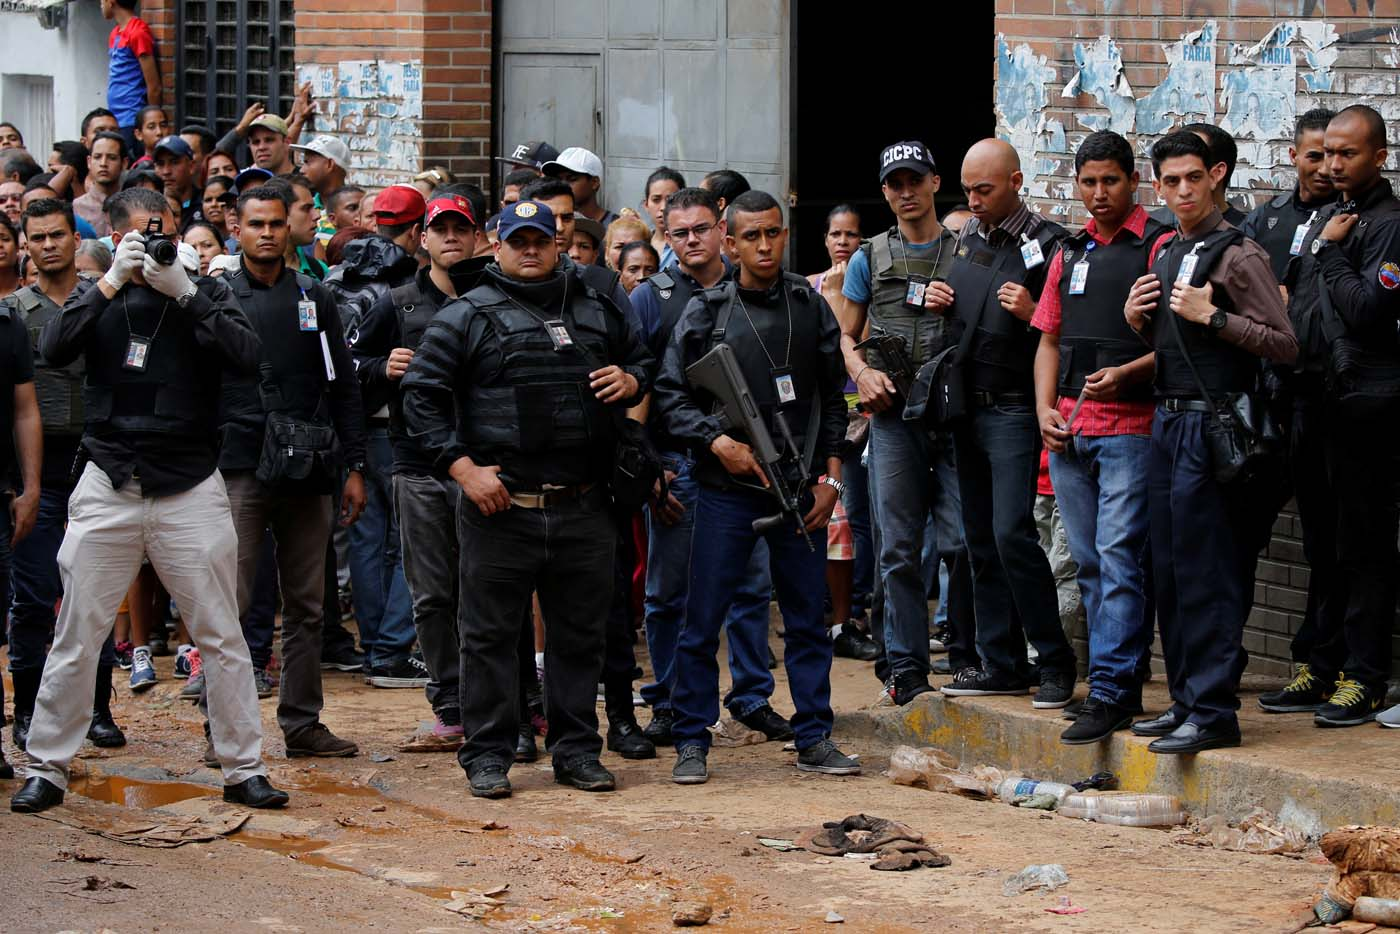 Police officers and criminal investigators look for evidence in front of a bakery, after it was looted in Caracas, Venezuela April 21, 2017. REUTERS/Carlos Garcia Rawlins